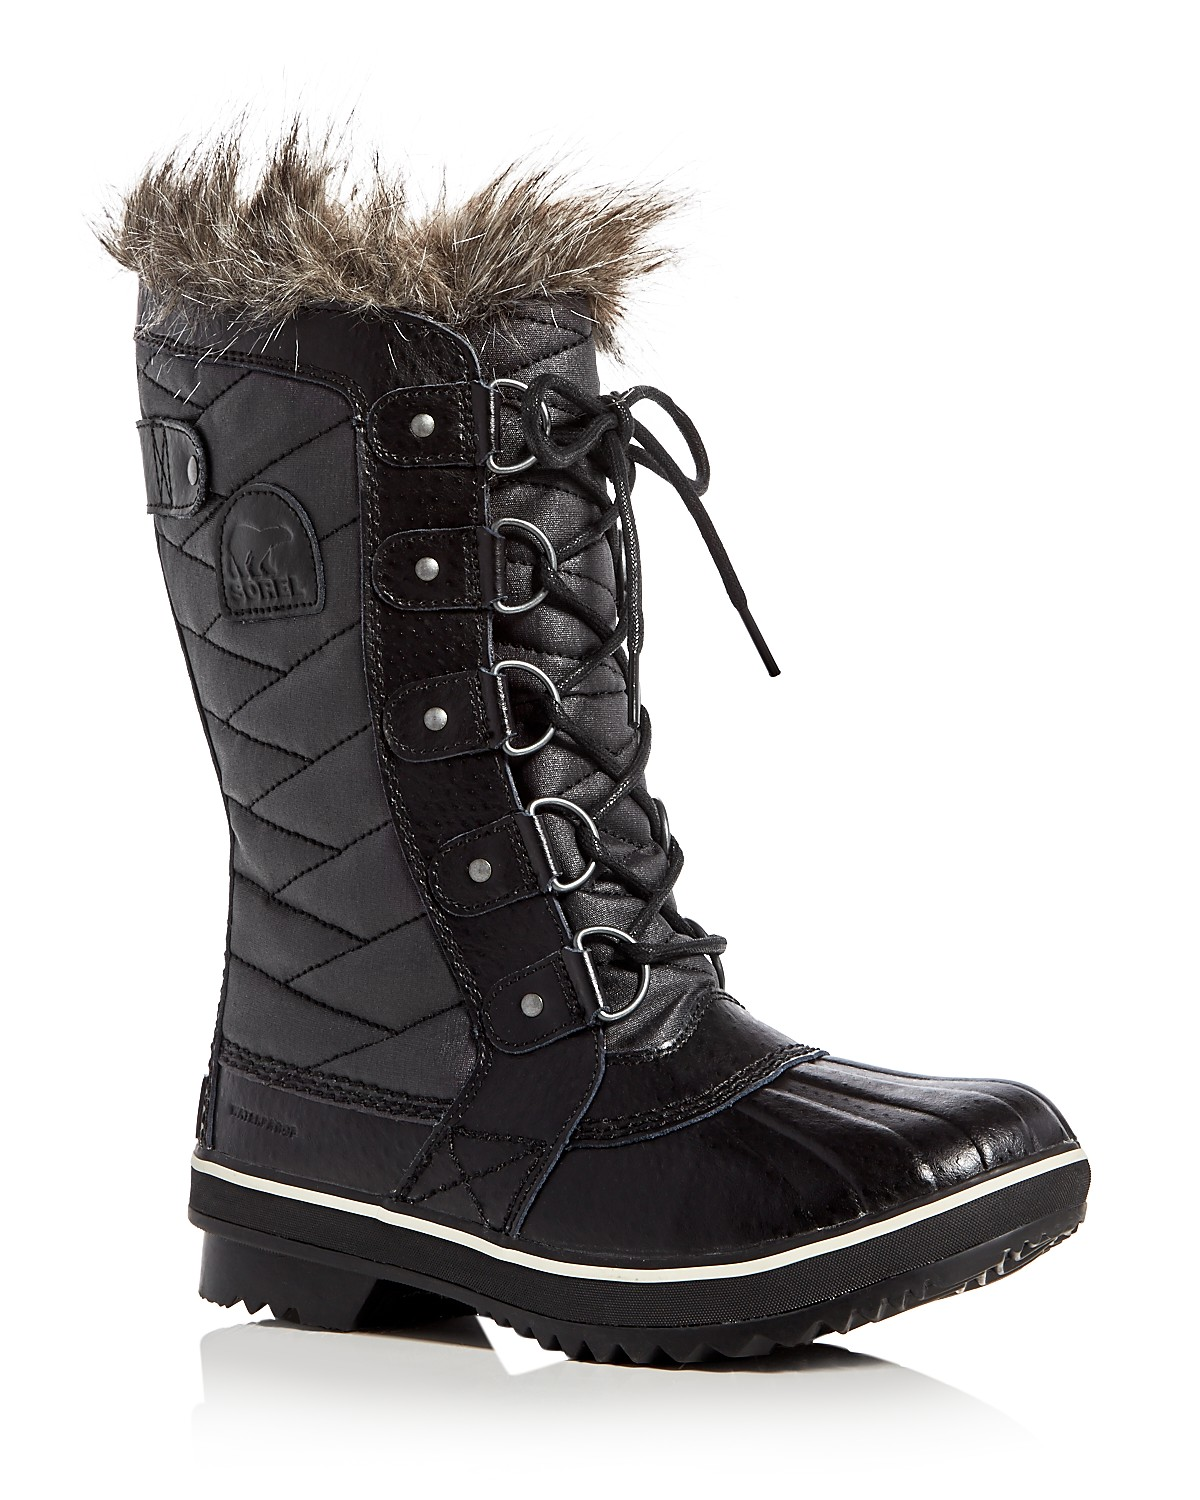 Cheapest For Sale Discount 2018 Unisex sorel Tofino Ii Lace Up Boots NuOReedP